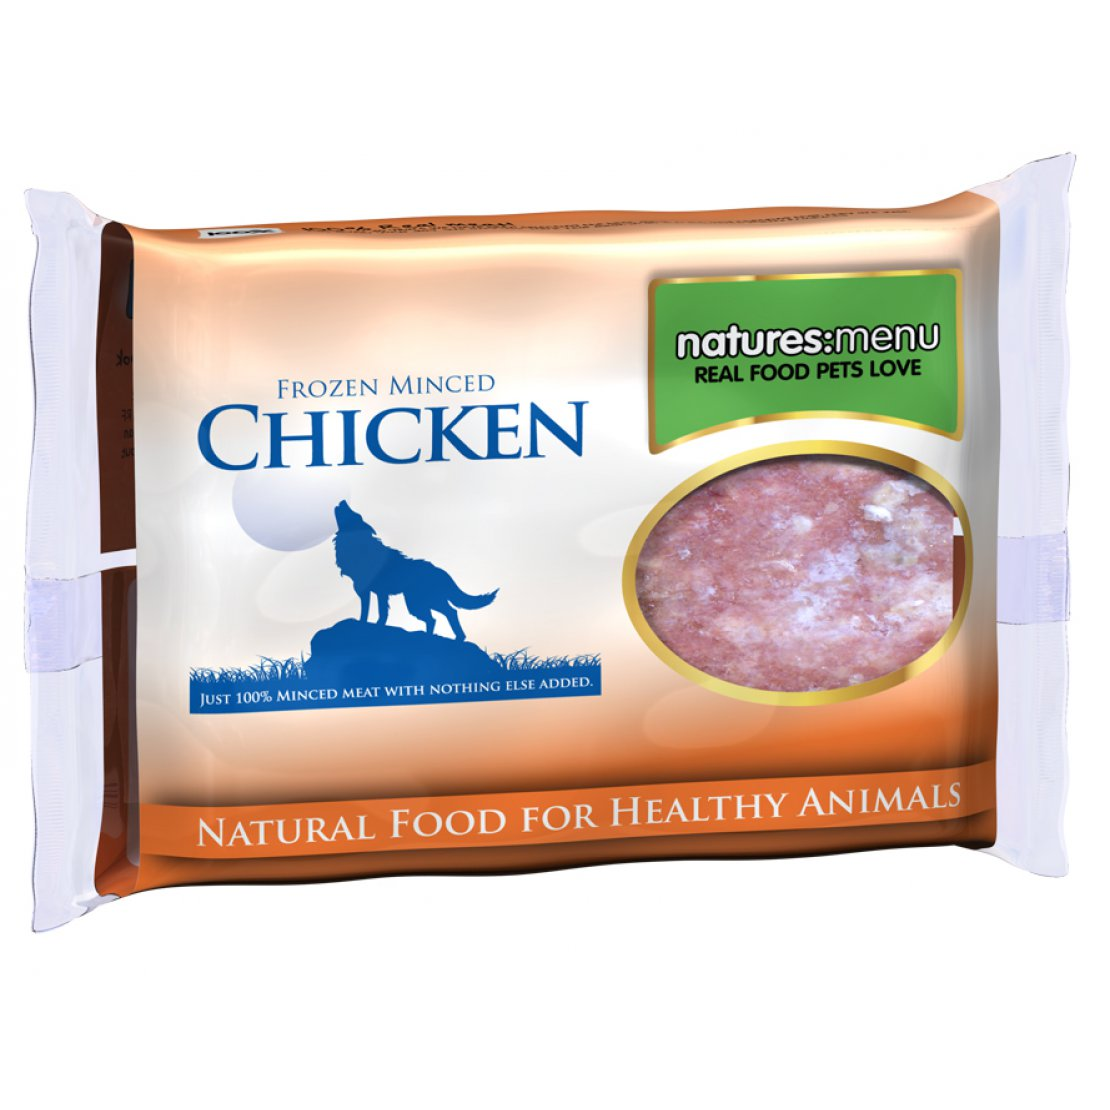 ONLY AVAILABLE FOR LOCAL DELIVERY. Natures Menu Frozen Dog Food. Chicken Mince